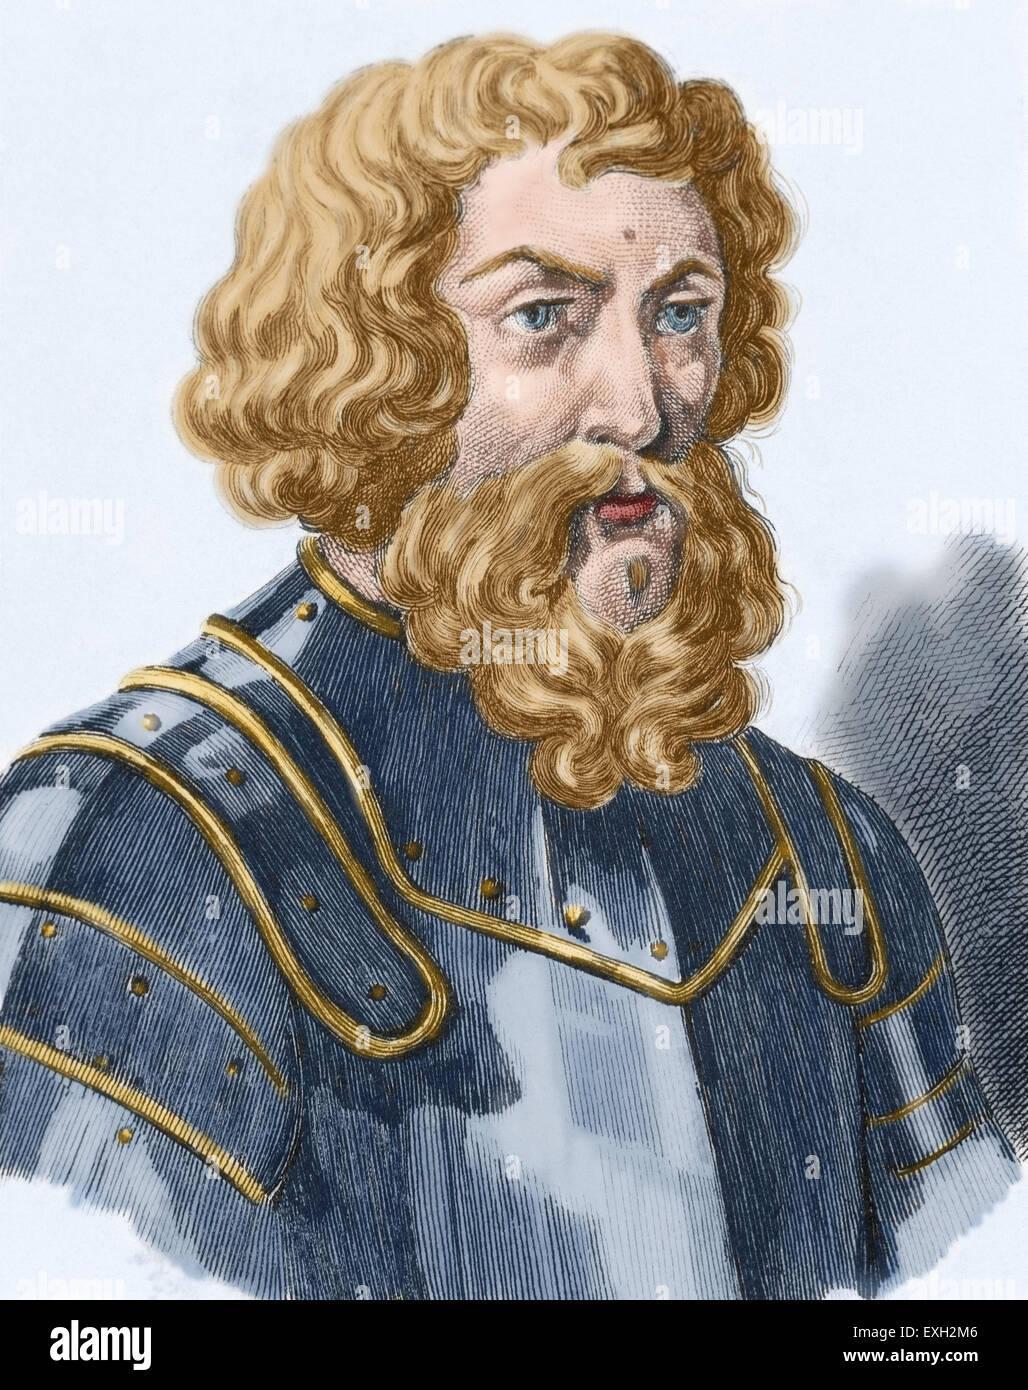 Dmitry Donskoy (1350-1389). Grand Prince of Moscow. Engraving. Colored. - Stock Image